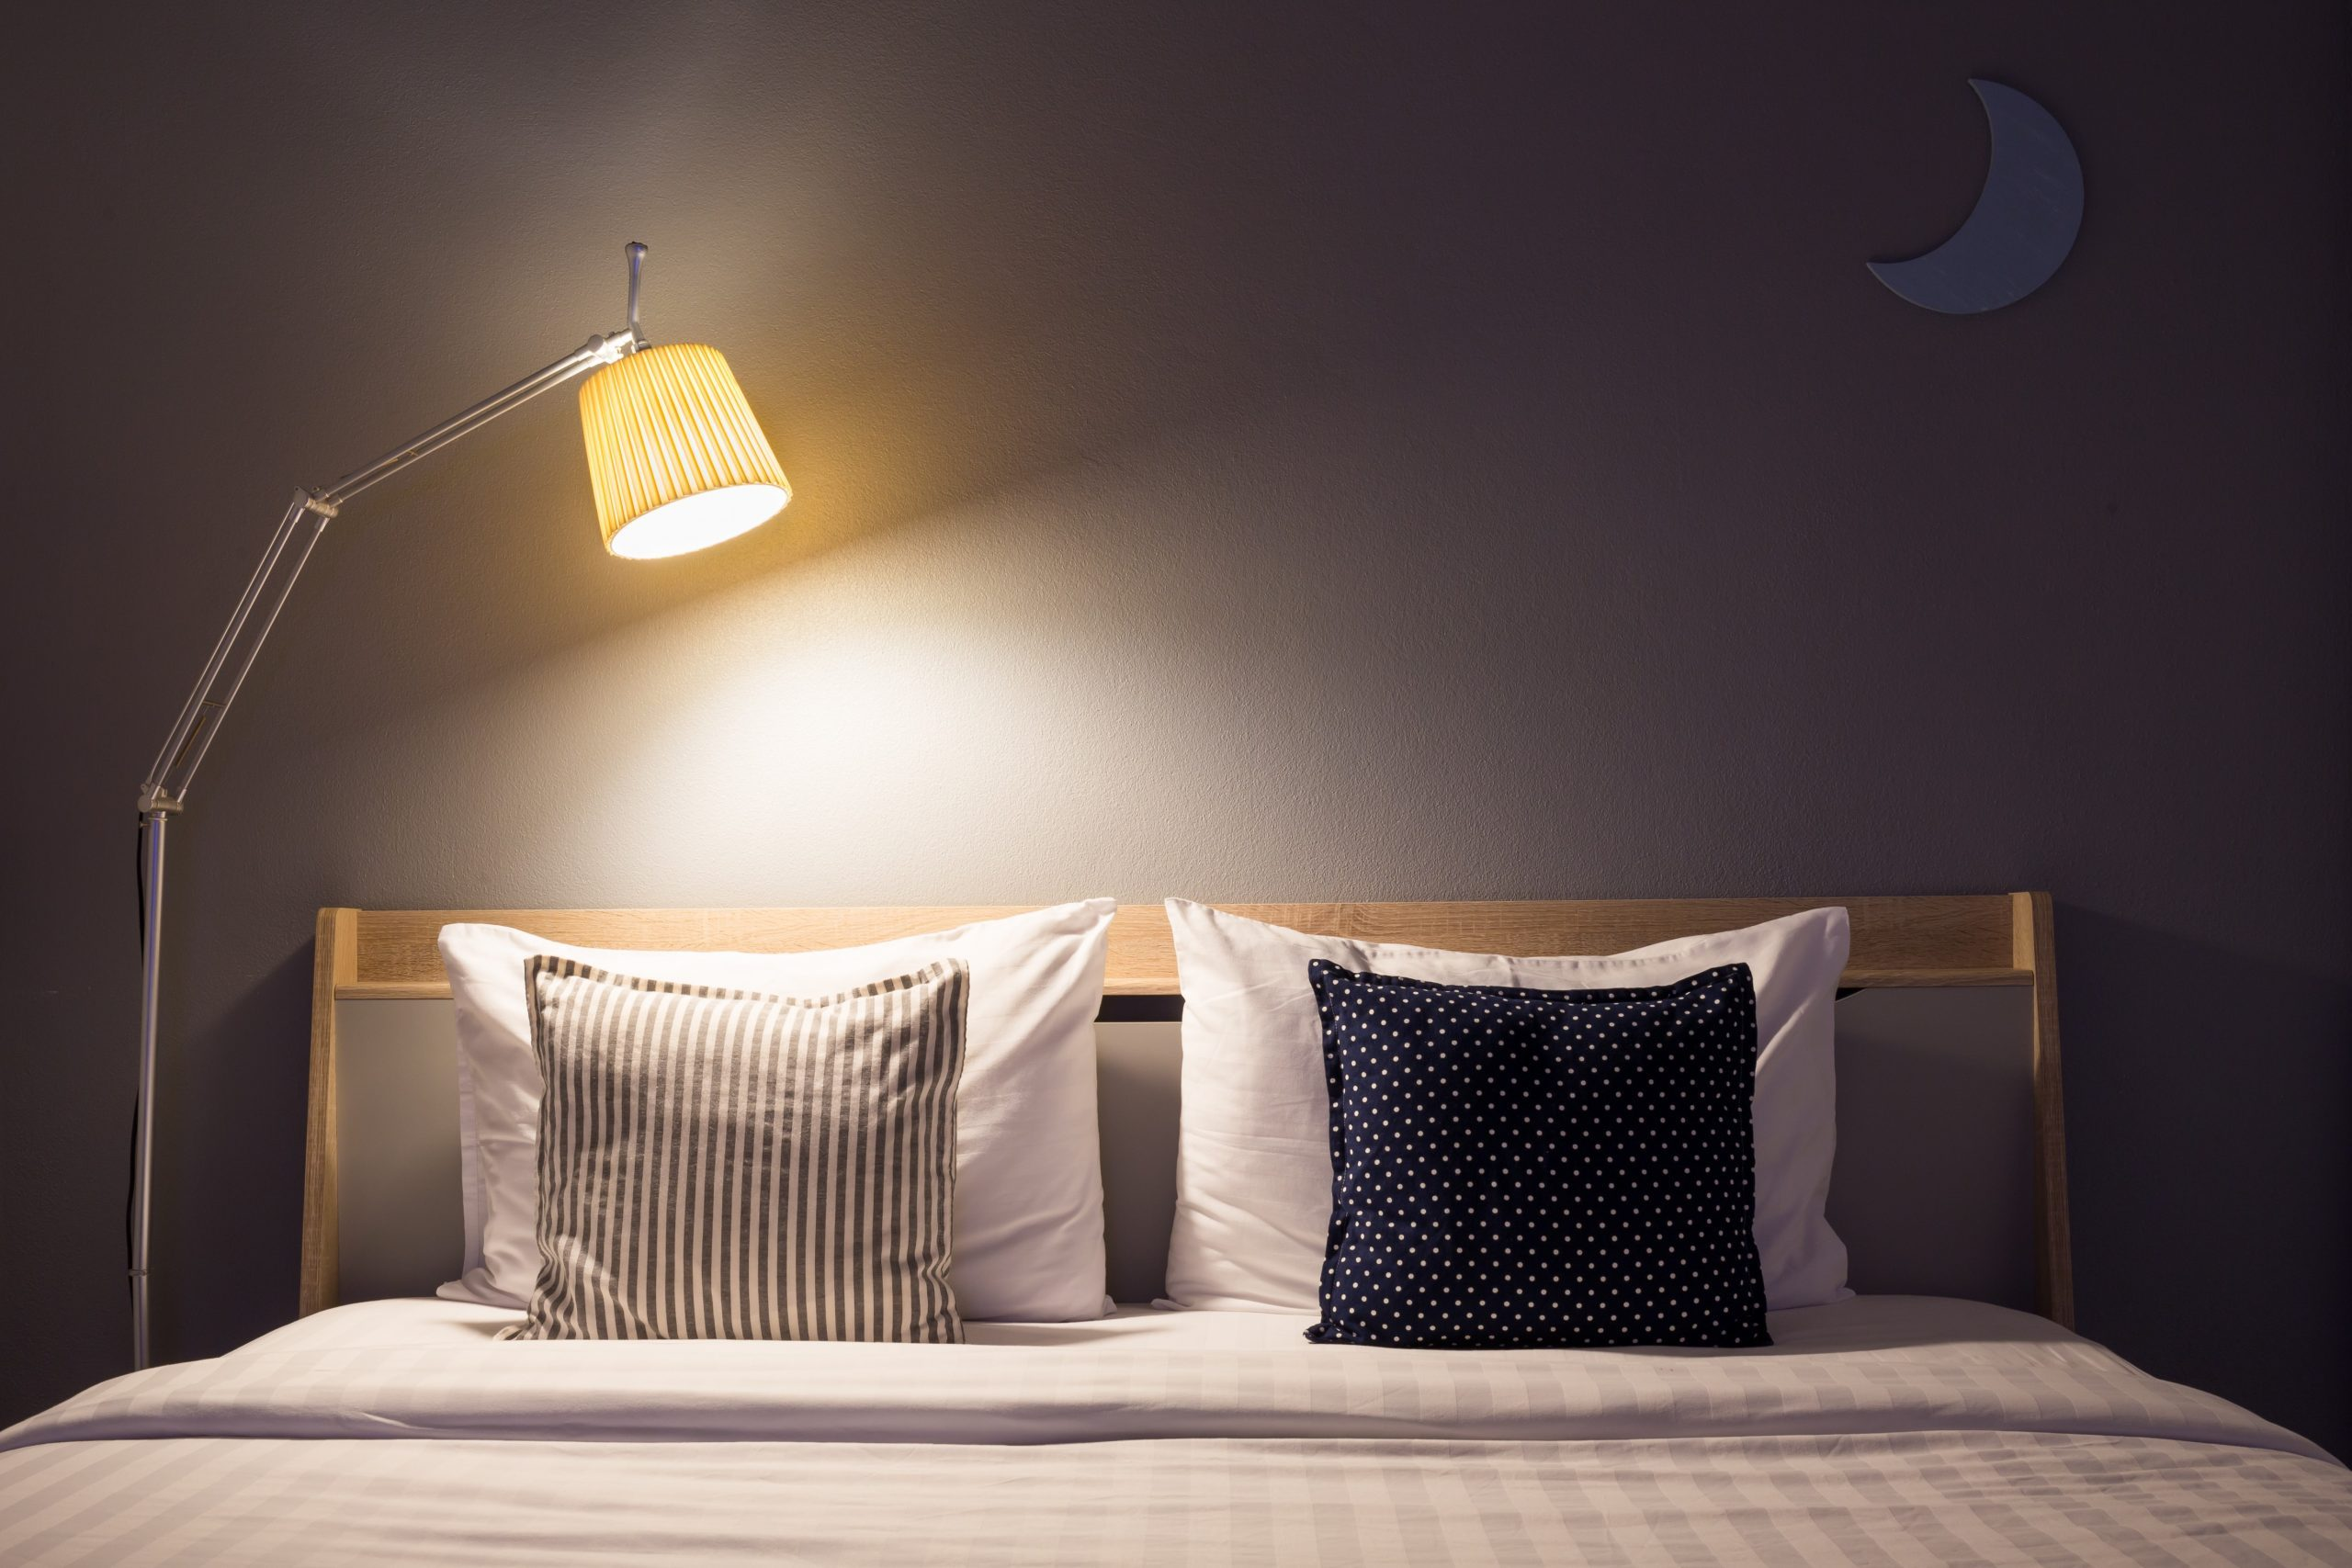 white cute bedroom interior with lamp and wooden in night time.